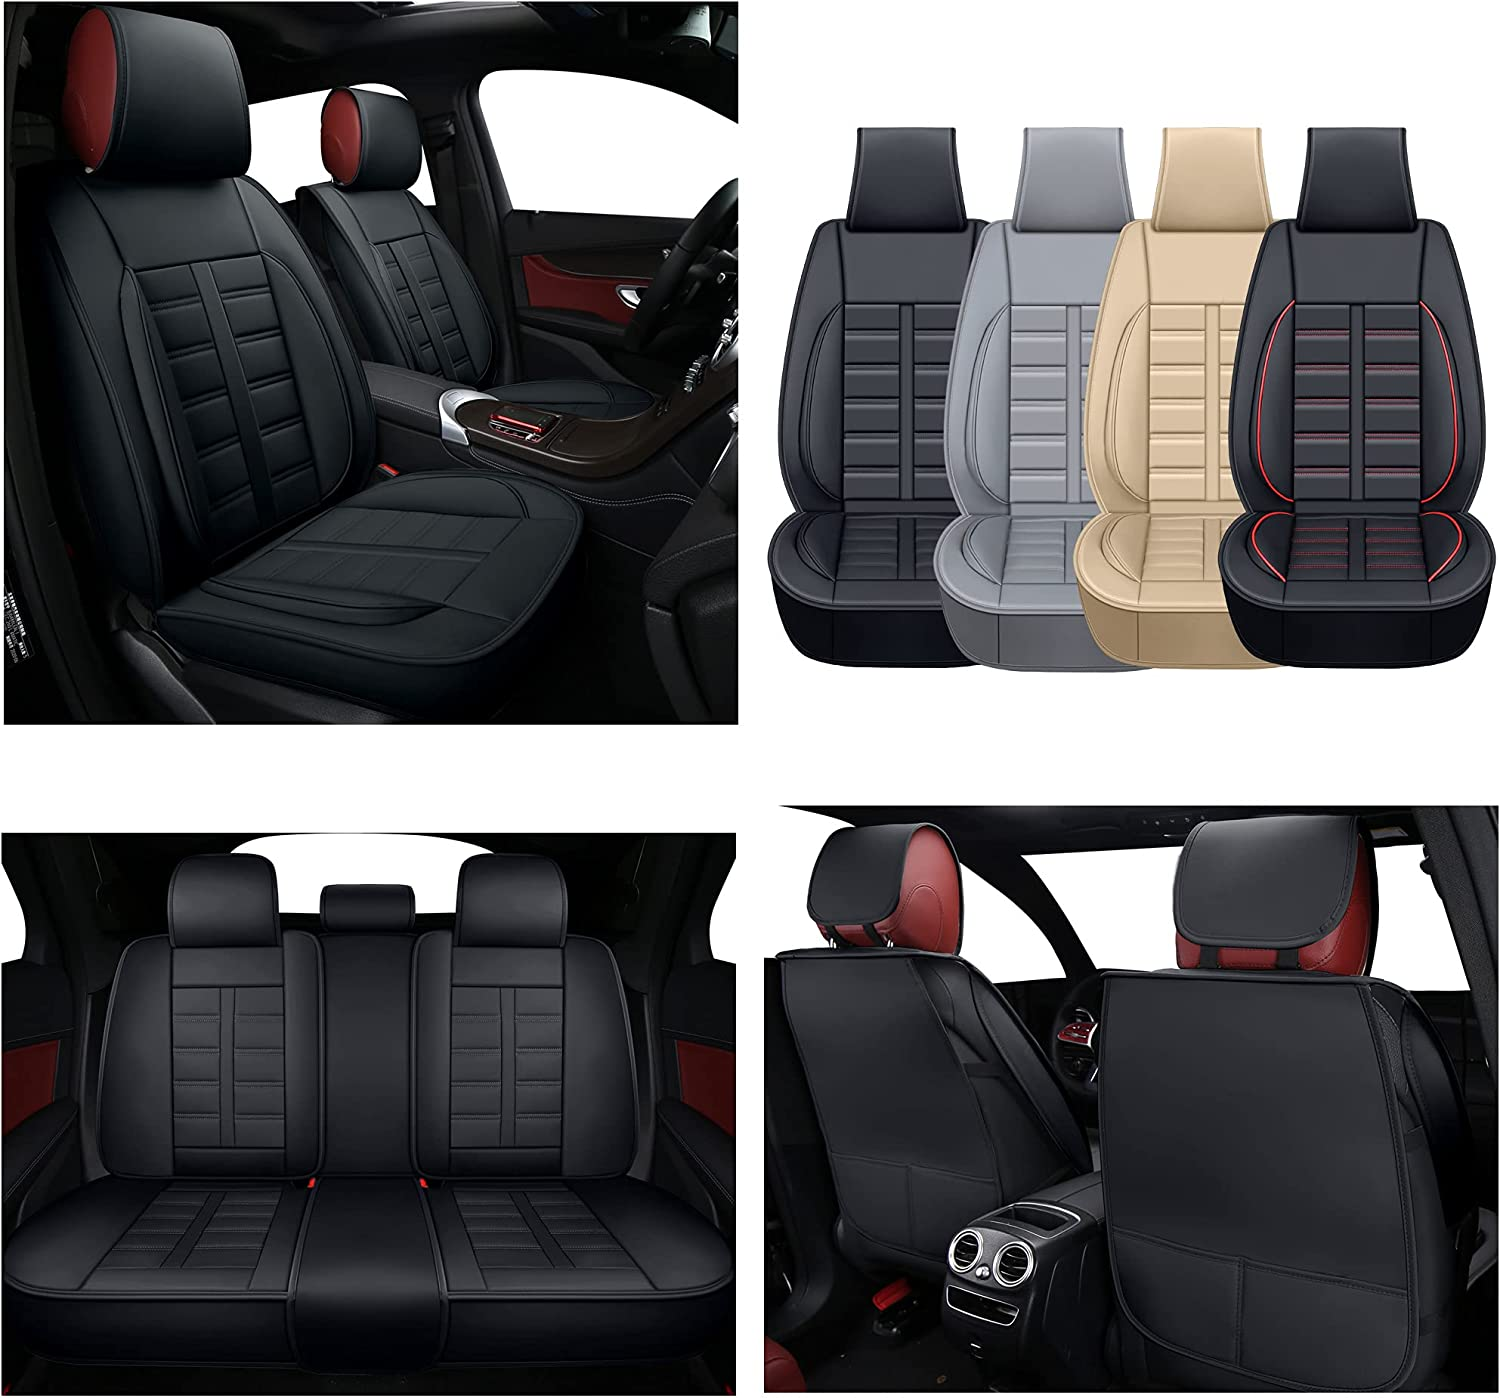 TKAAKT Car Seat Covers Faux Vehicle 5 67% OFF of fixed price ☆ very popular Cush Automotive Leatherette